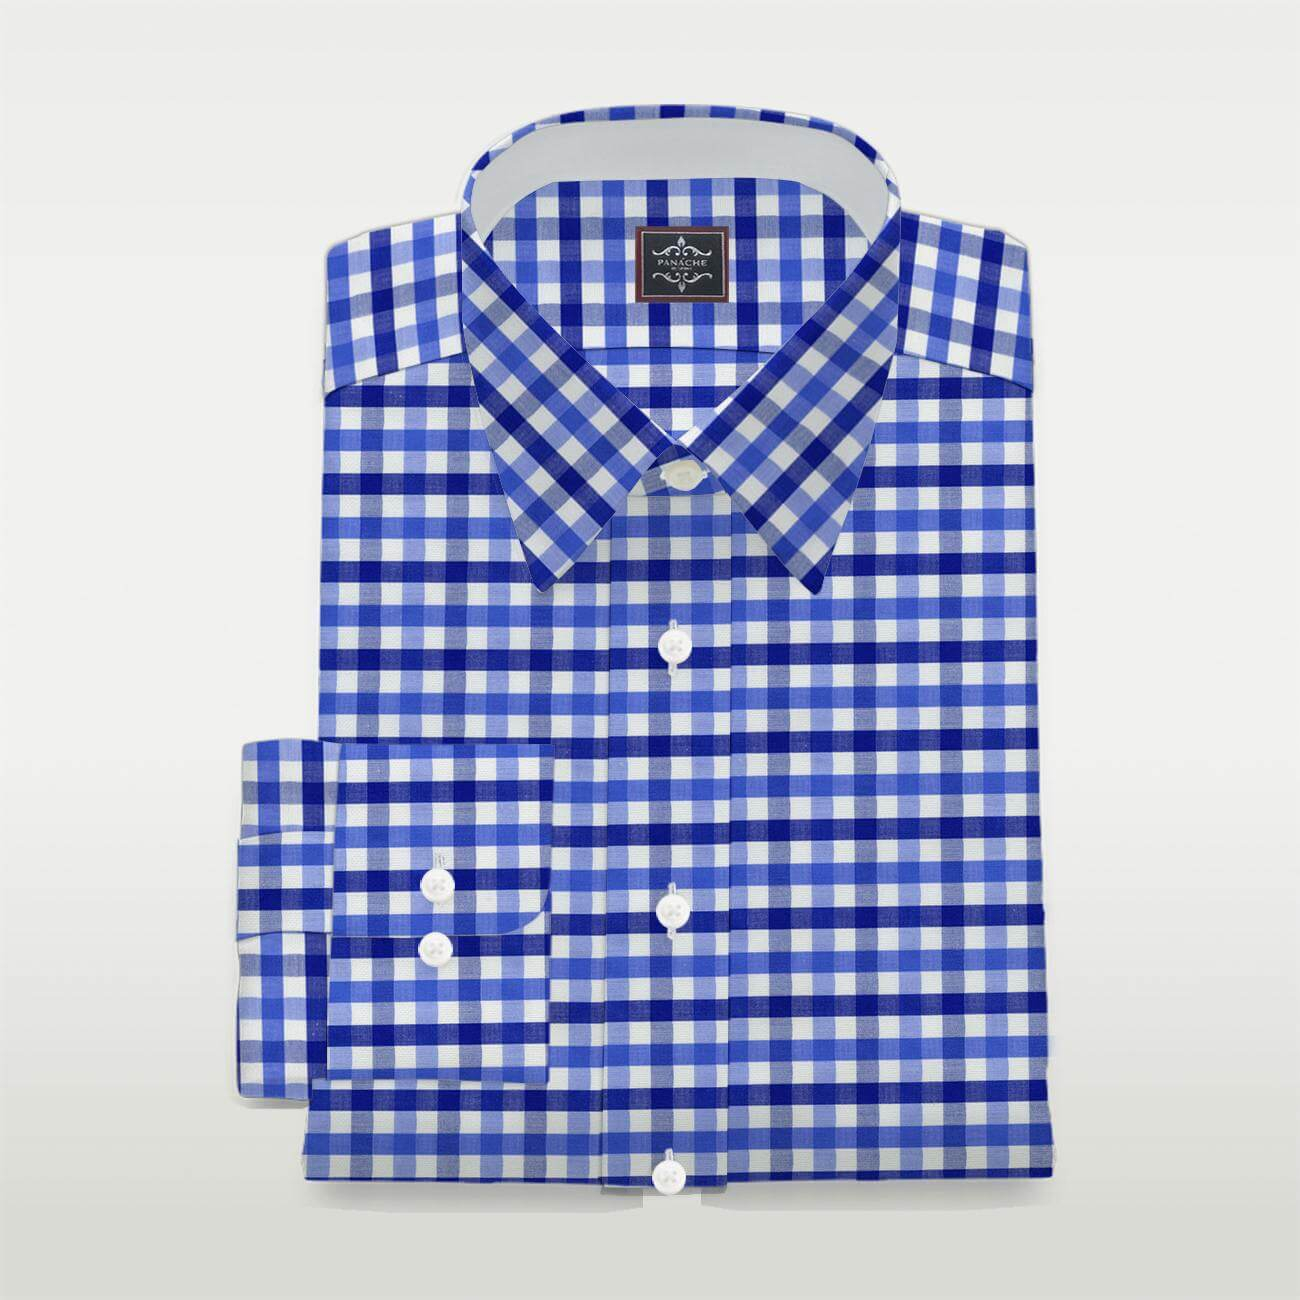 Luxury 1 Checkered Shirt